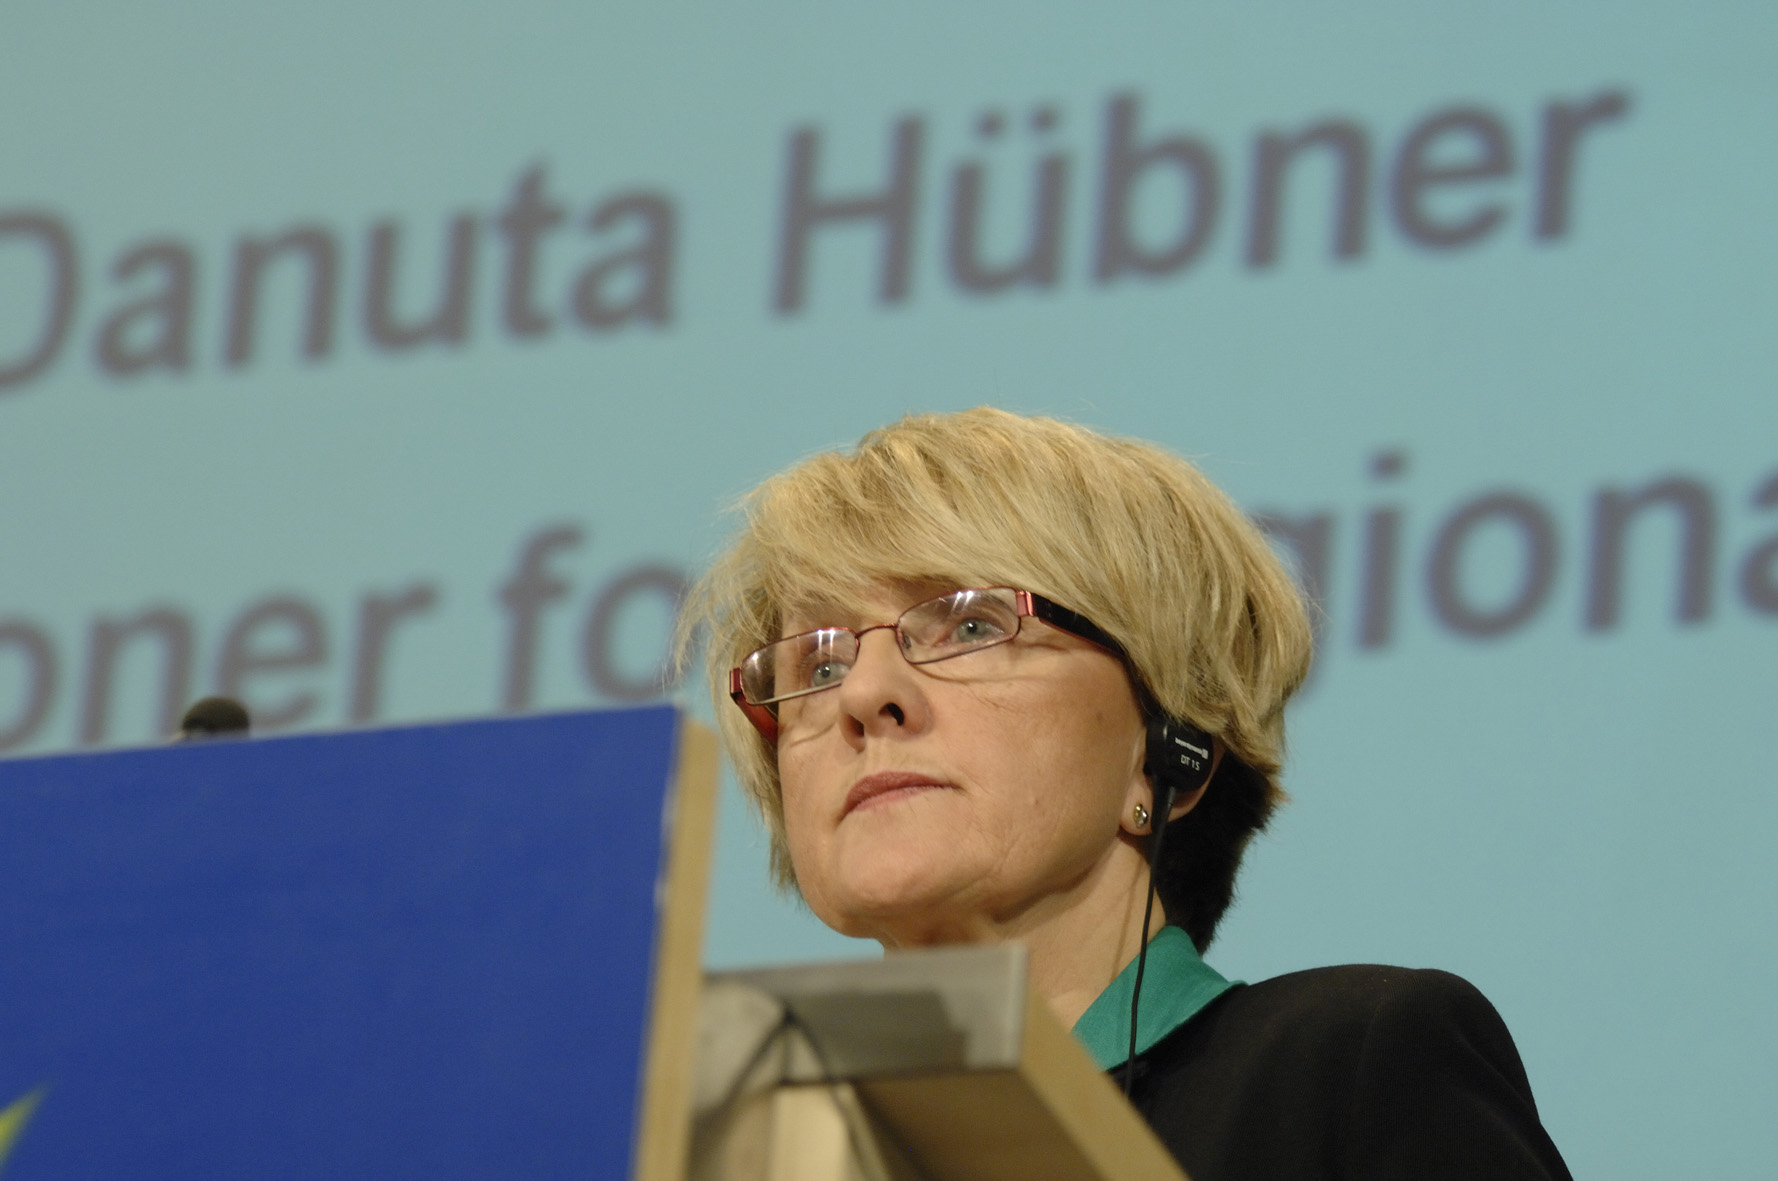 Press conference by Danuta Hübner on the Cohesion policy budget execution for 2007